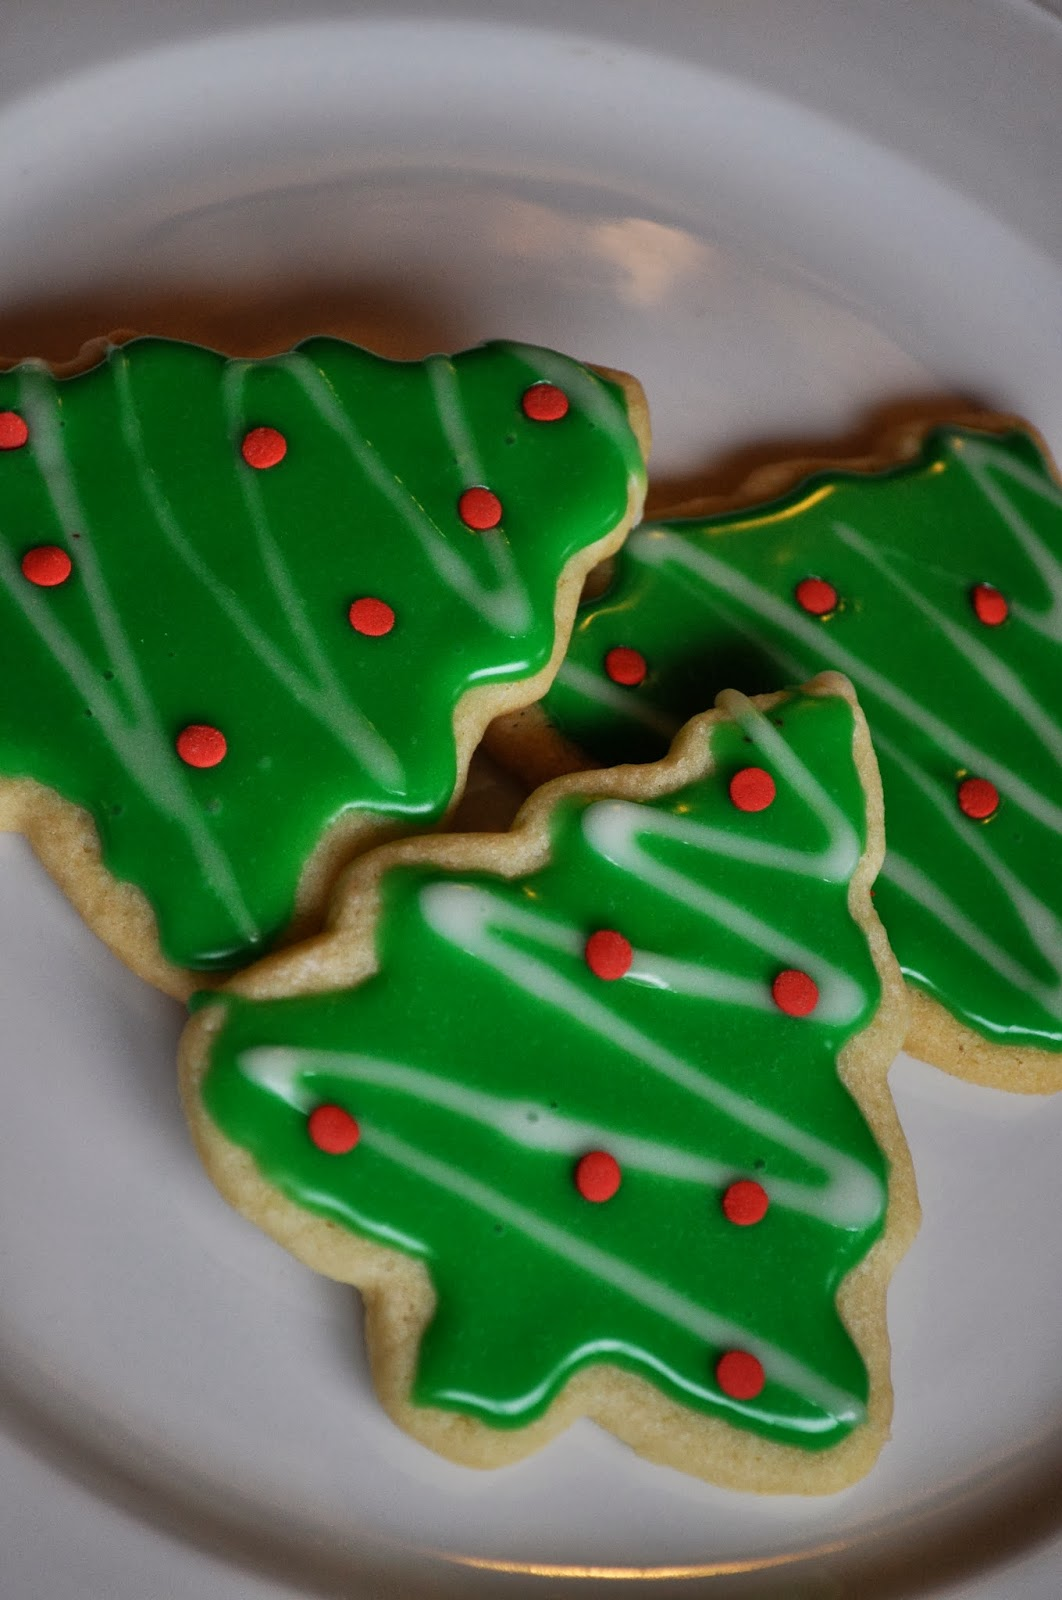 Our Italian Kitchen Christmas Sugar Cookies With Glaze Icing